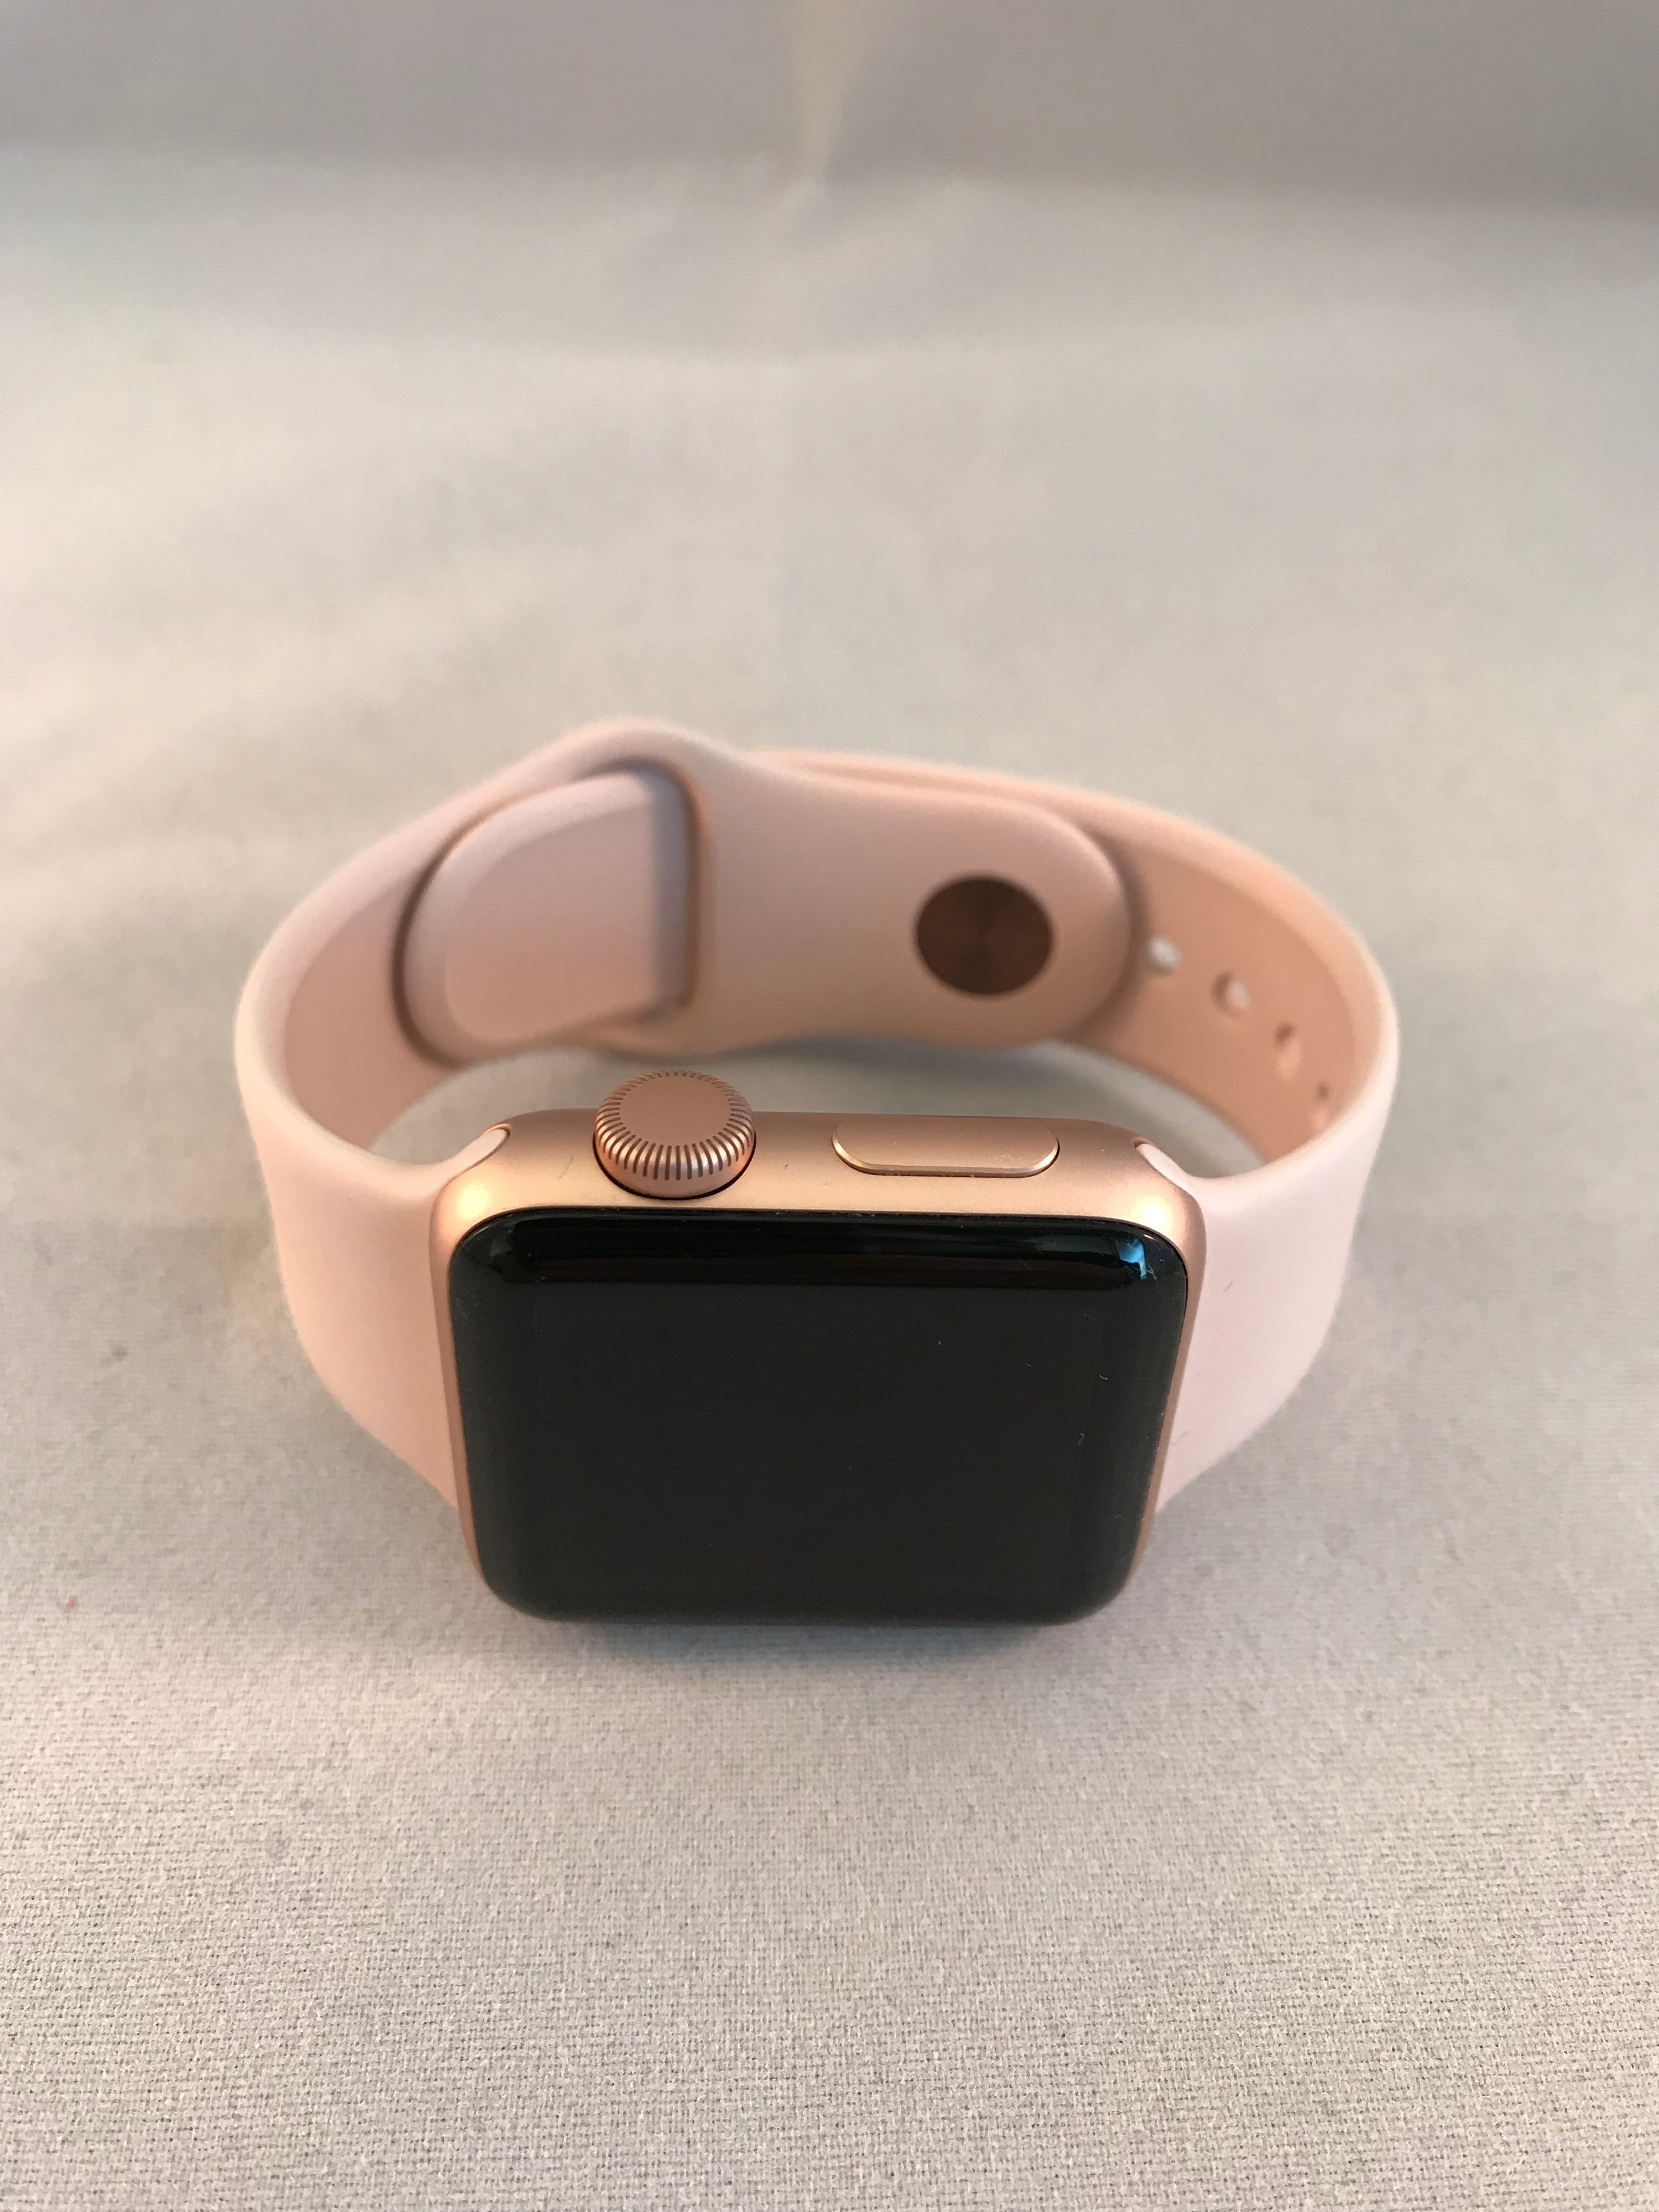 Watch Series 3 (38mm), Sport Band - Pink Sand, bild 2